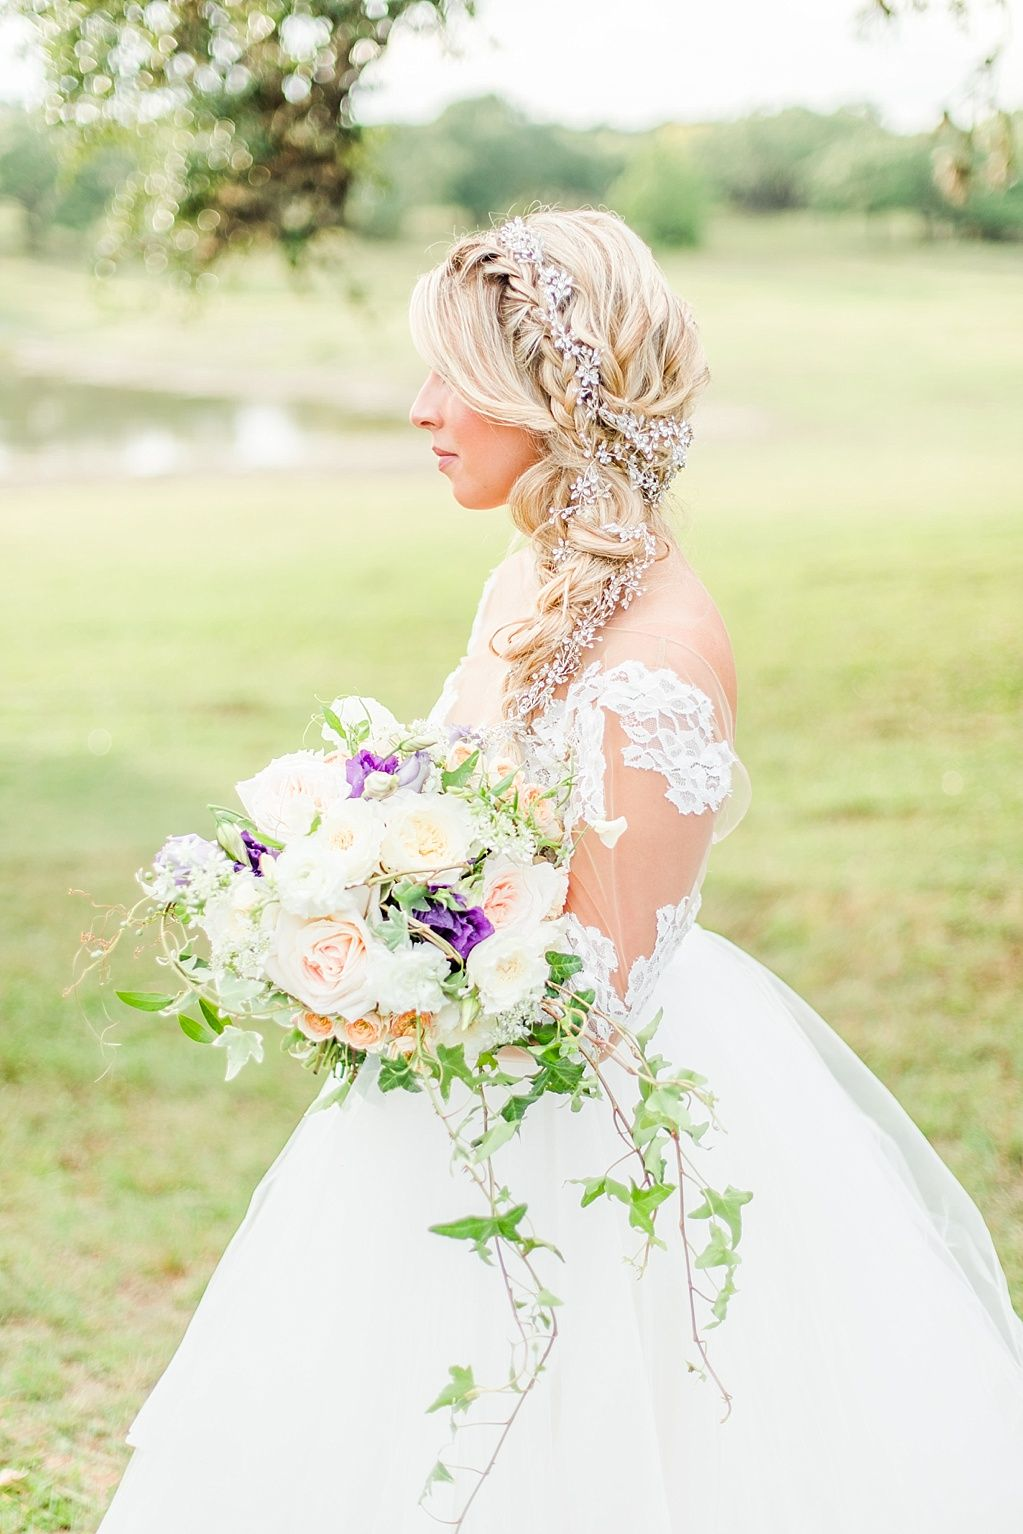 Disney Princess Wedding Insipration Featuring Rapunzel From The Movie Tangled Flower In Hair Wedding Rapunzel Wedding Disney Wedding Disney Princess Wedding [ 1534 x 1023 Pixel ]